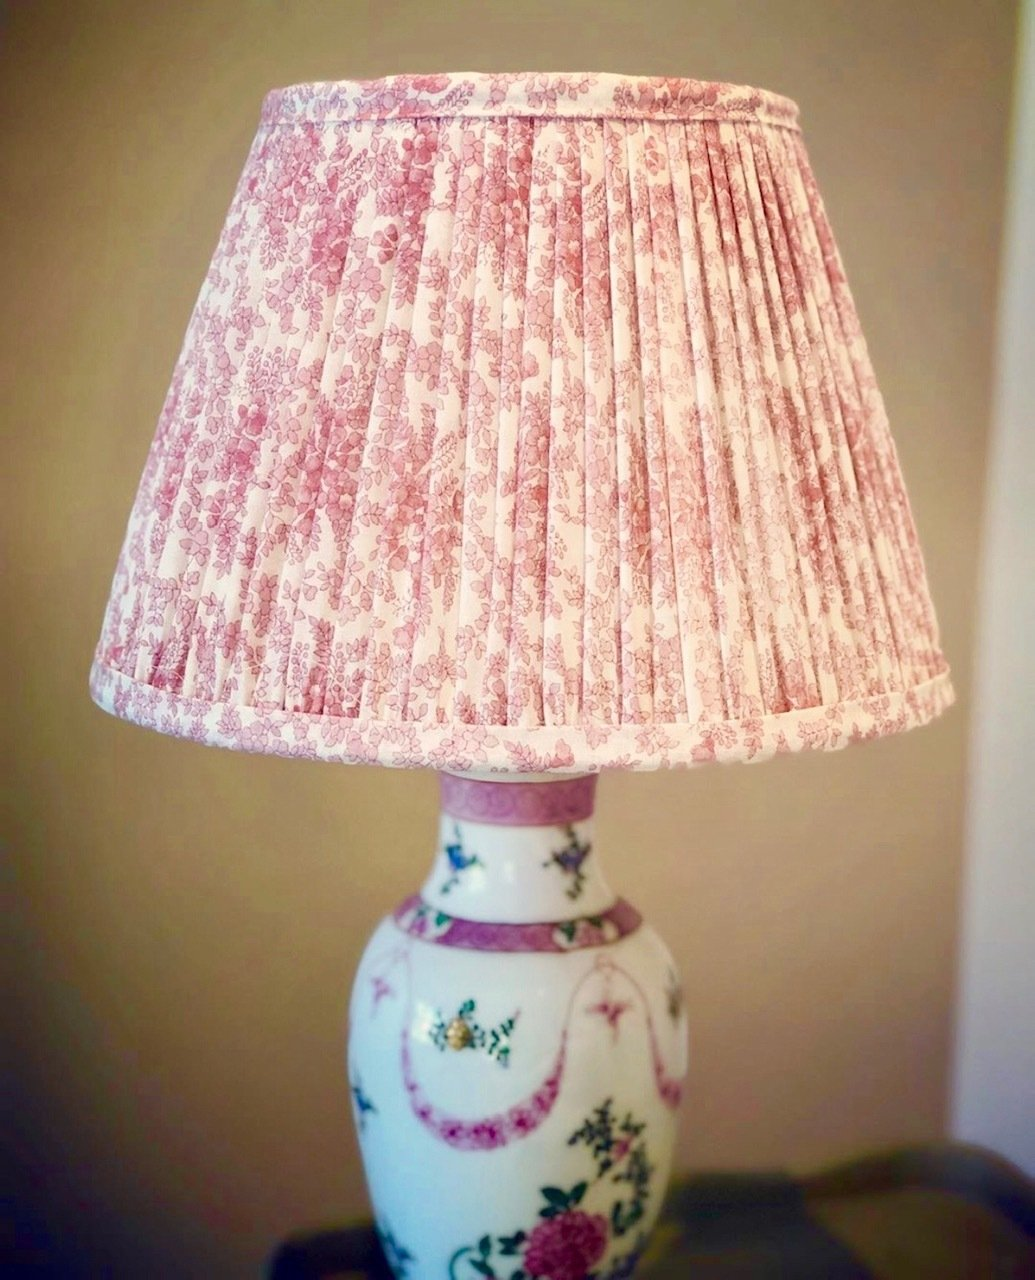 Printed Liberty Print Cotton Lampshade - Pale Pink & White